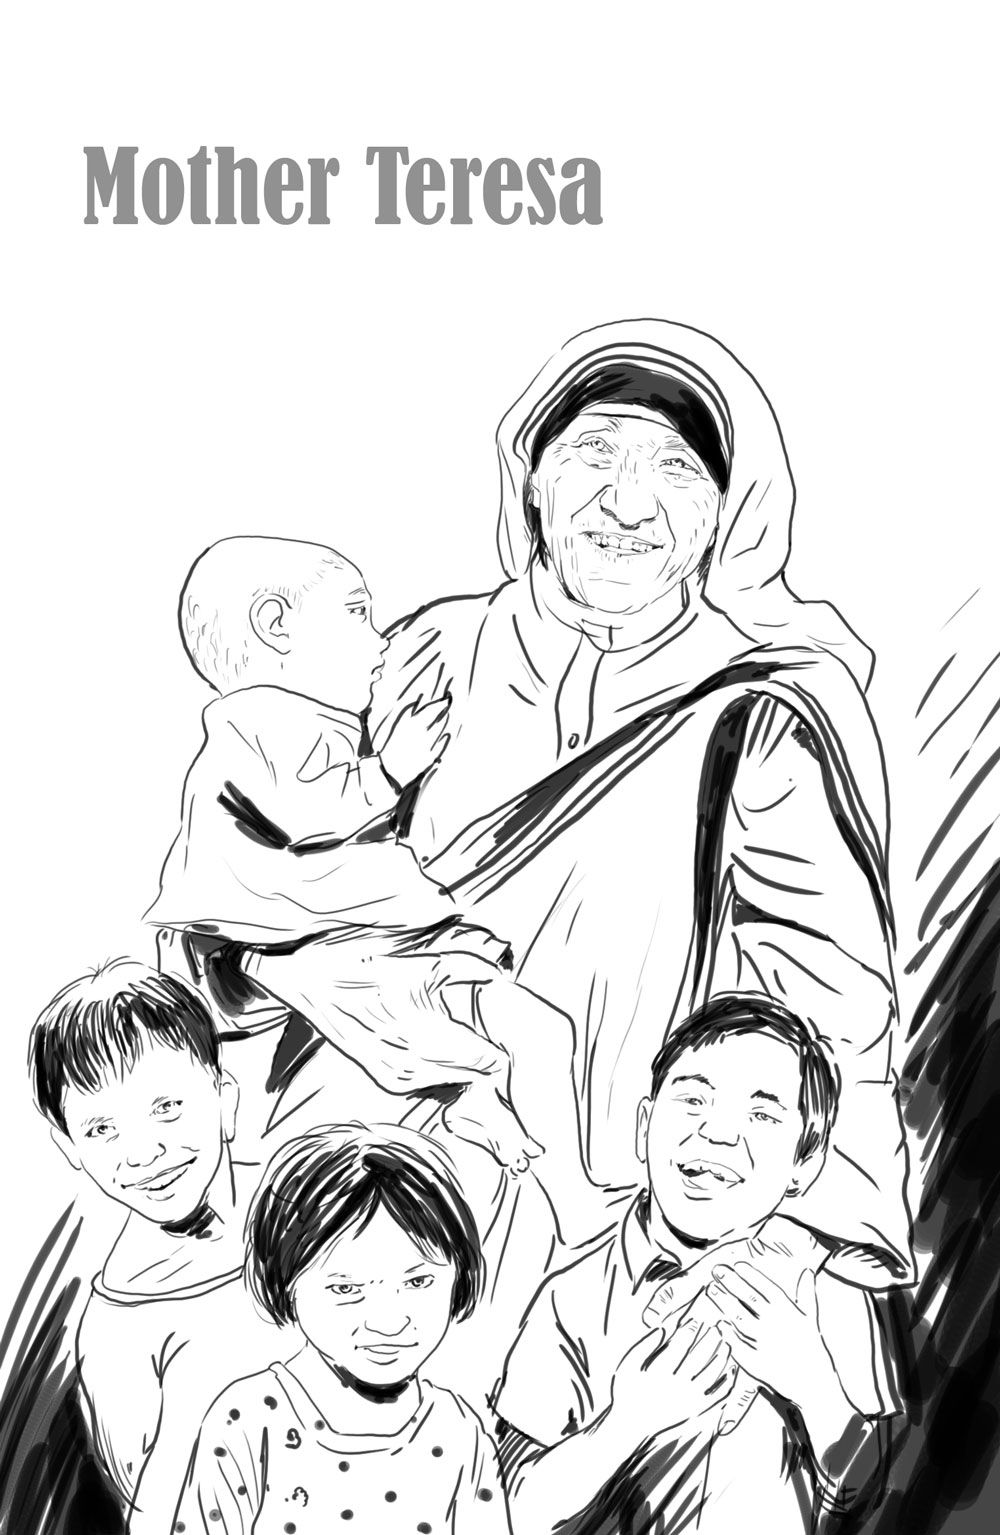 bp.blogspot.com: Mother Teresa with children coloring page